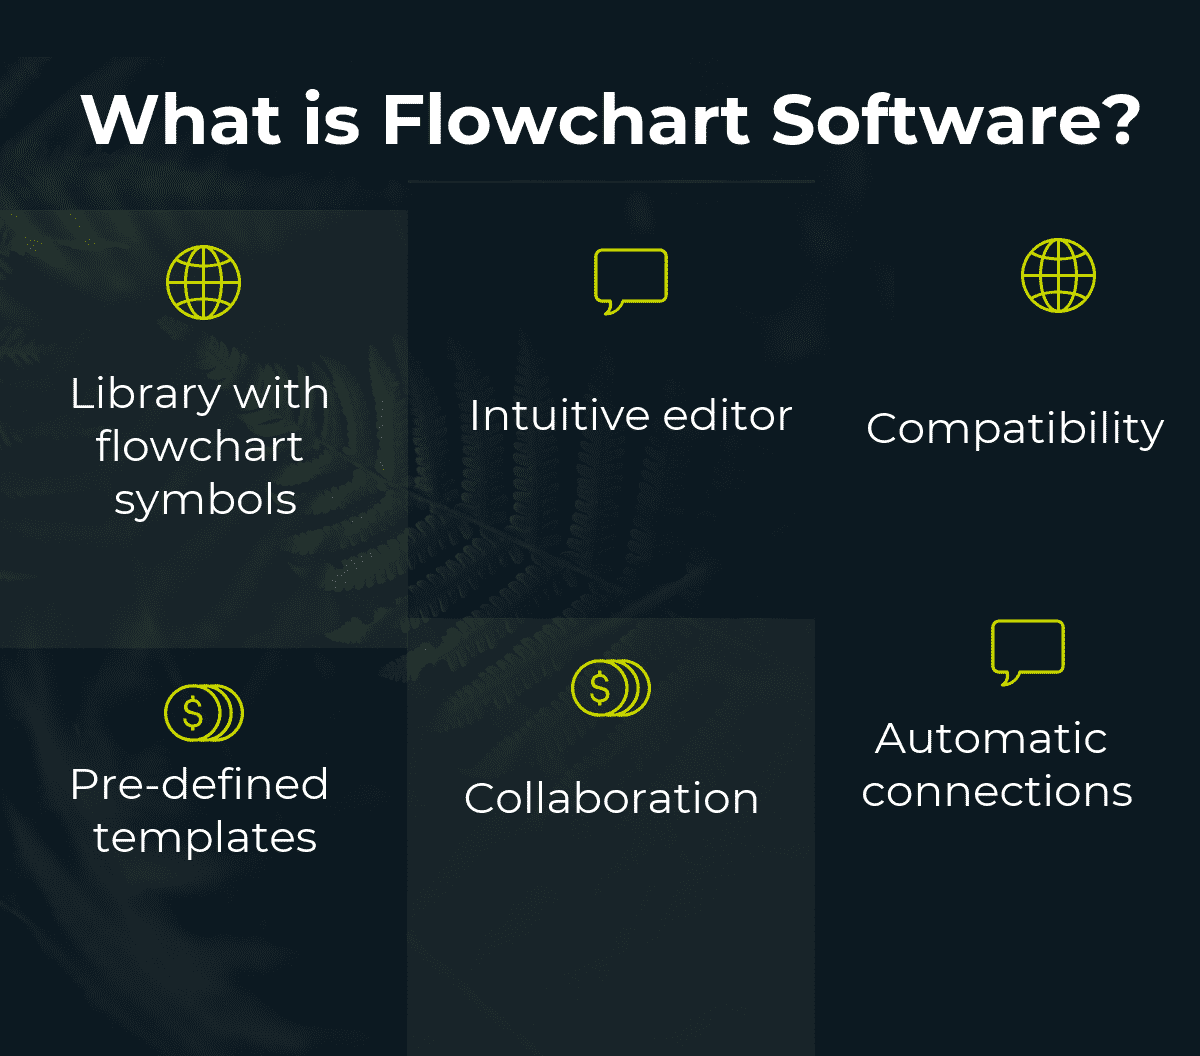 What is Flowchart Software?